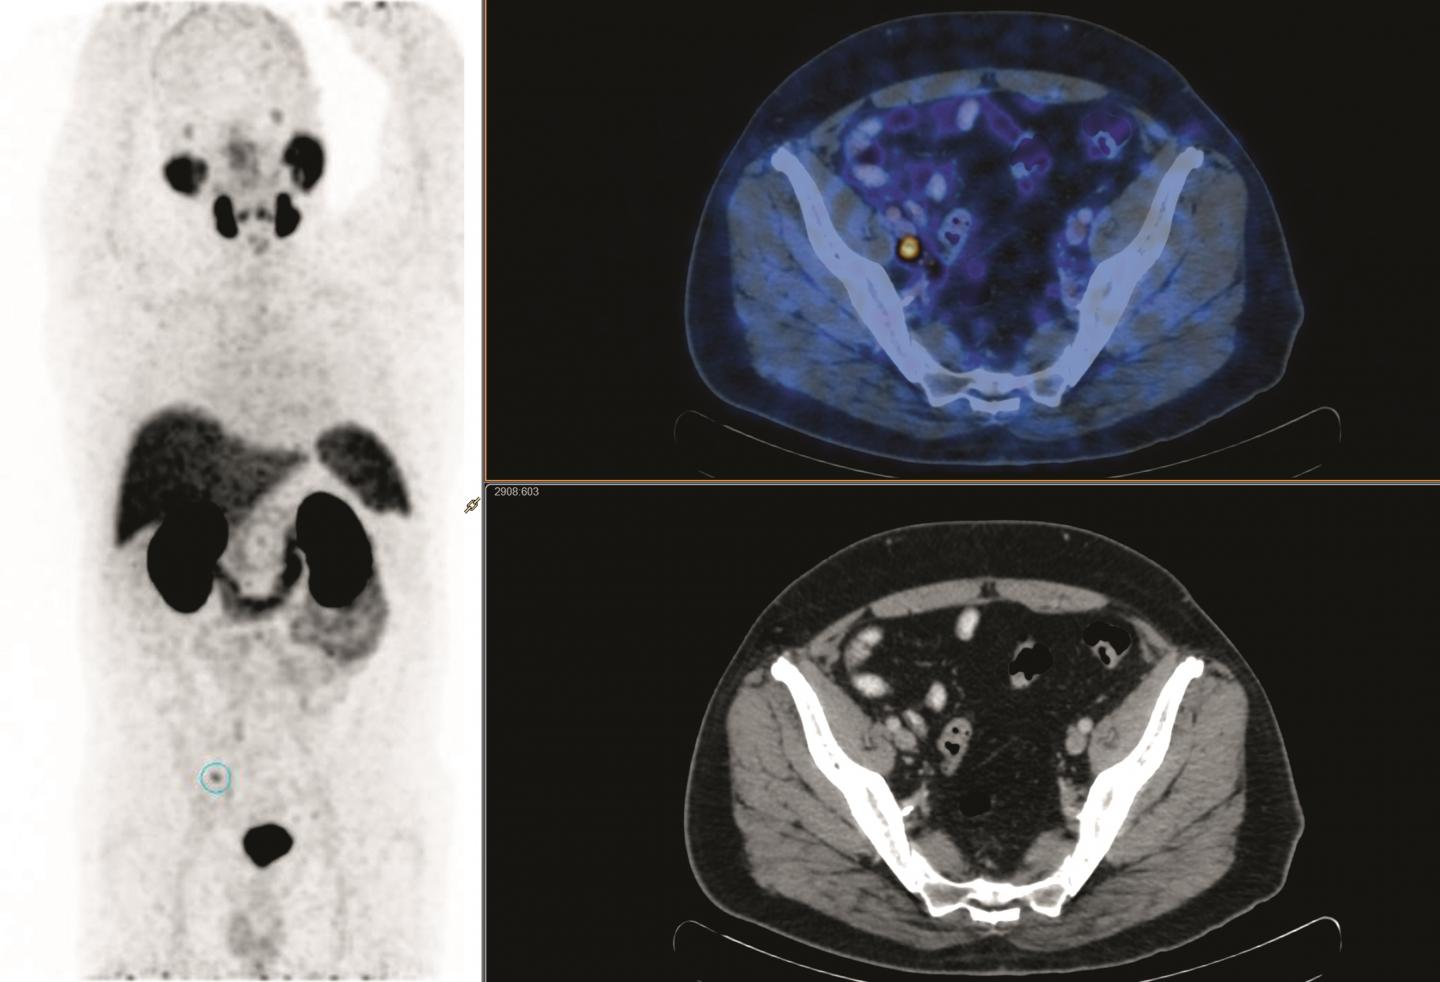 PSMA PET/CT Before-and-after Salvage Radiotherapy